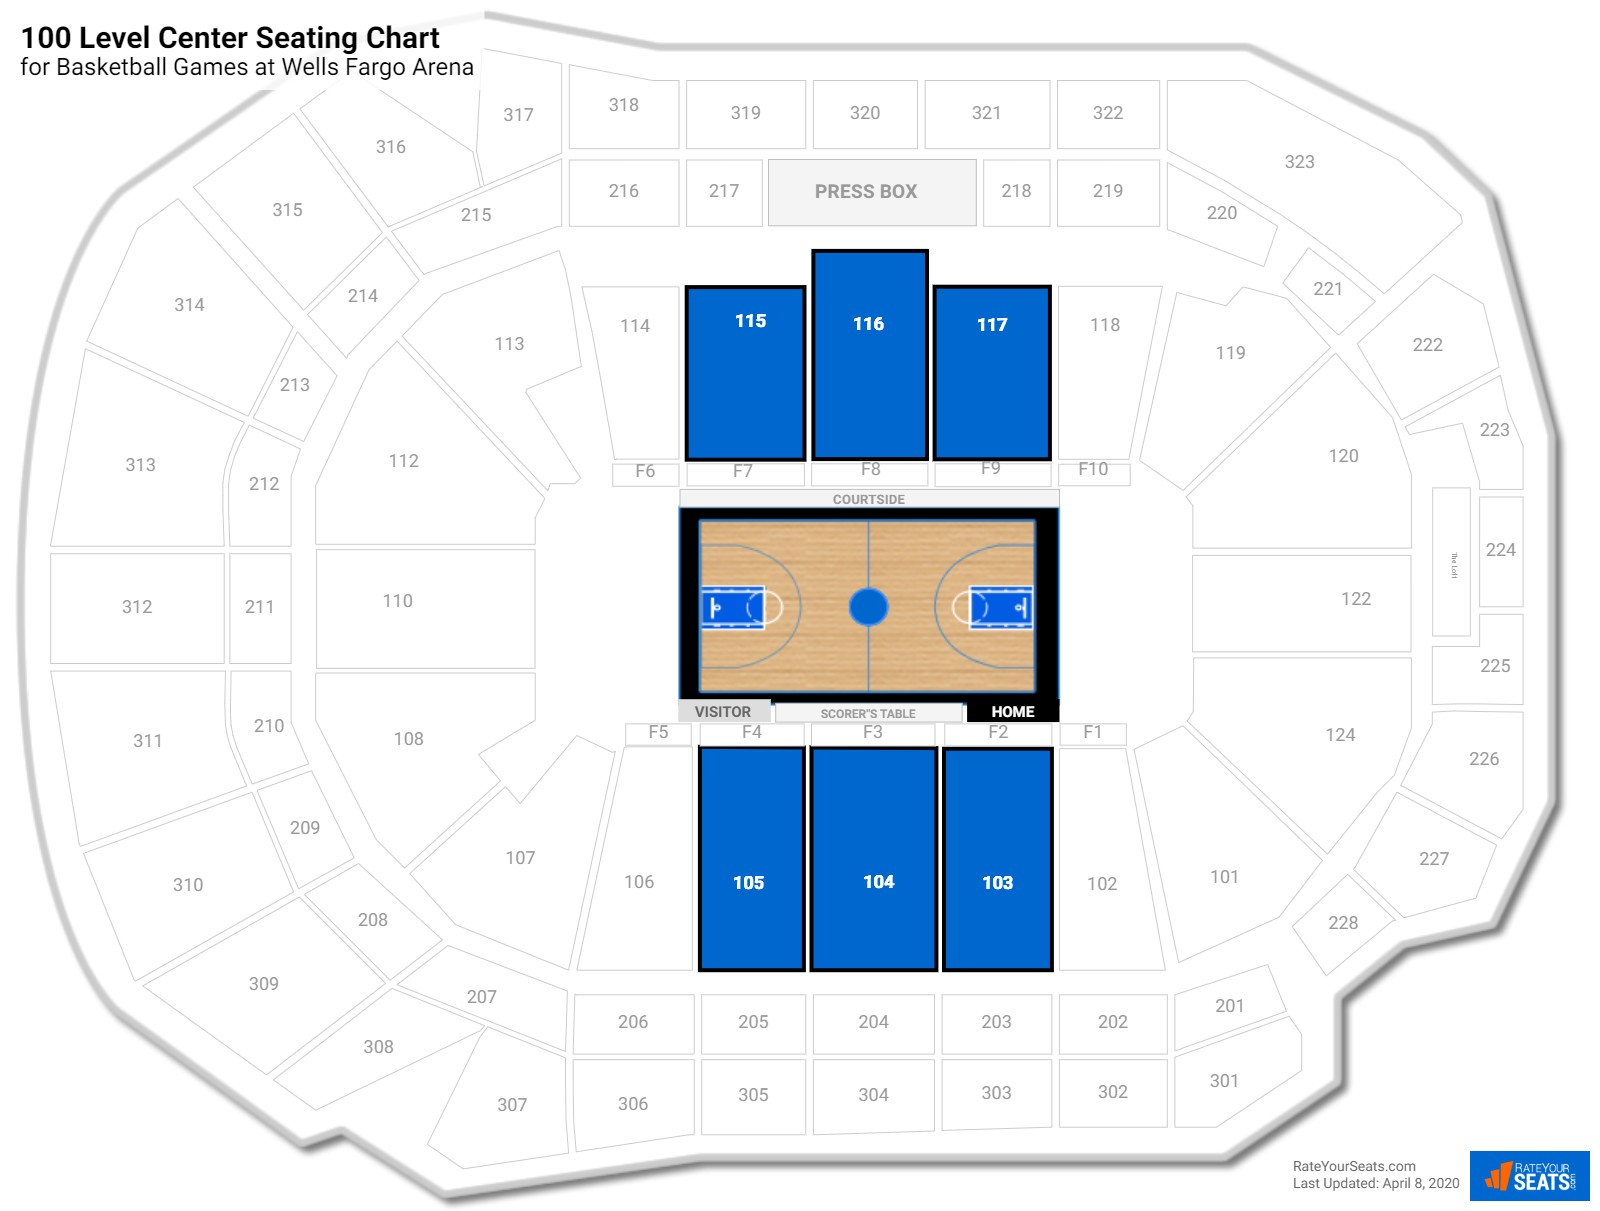 Wells Fargo Arena 100 Level Center seating chart